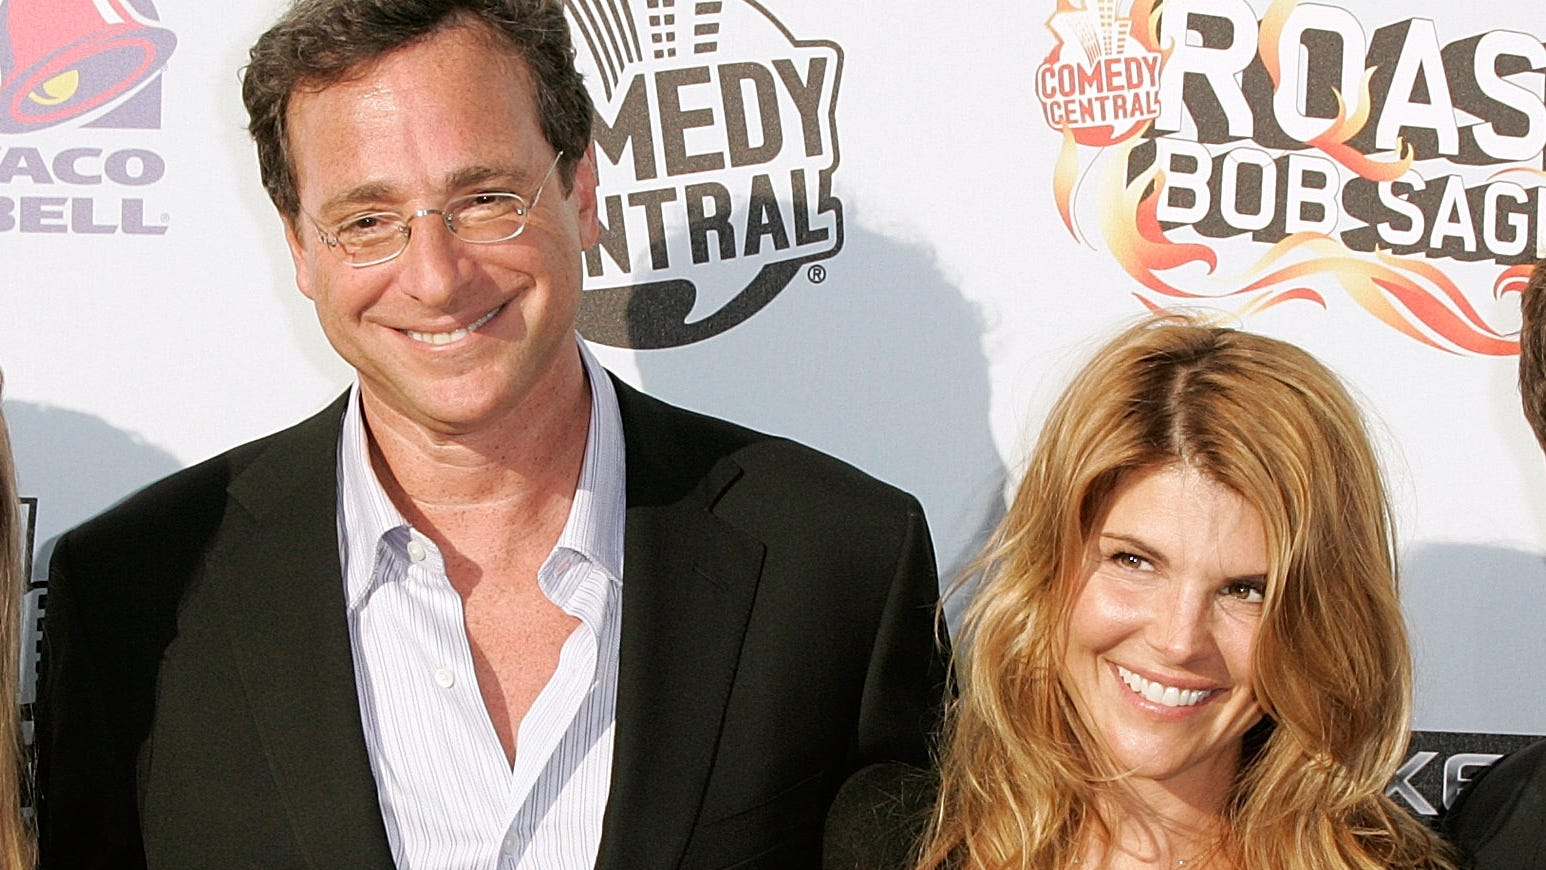 Bob Saget with Lori Loughlin at Warner Brothers Studios on Aug. 3, 2008 in Burbank, California.